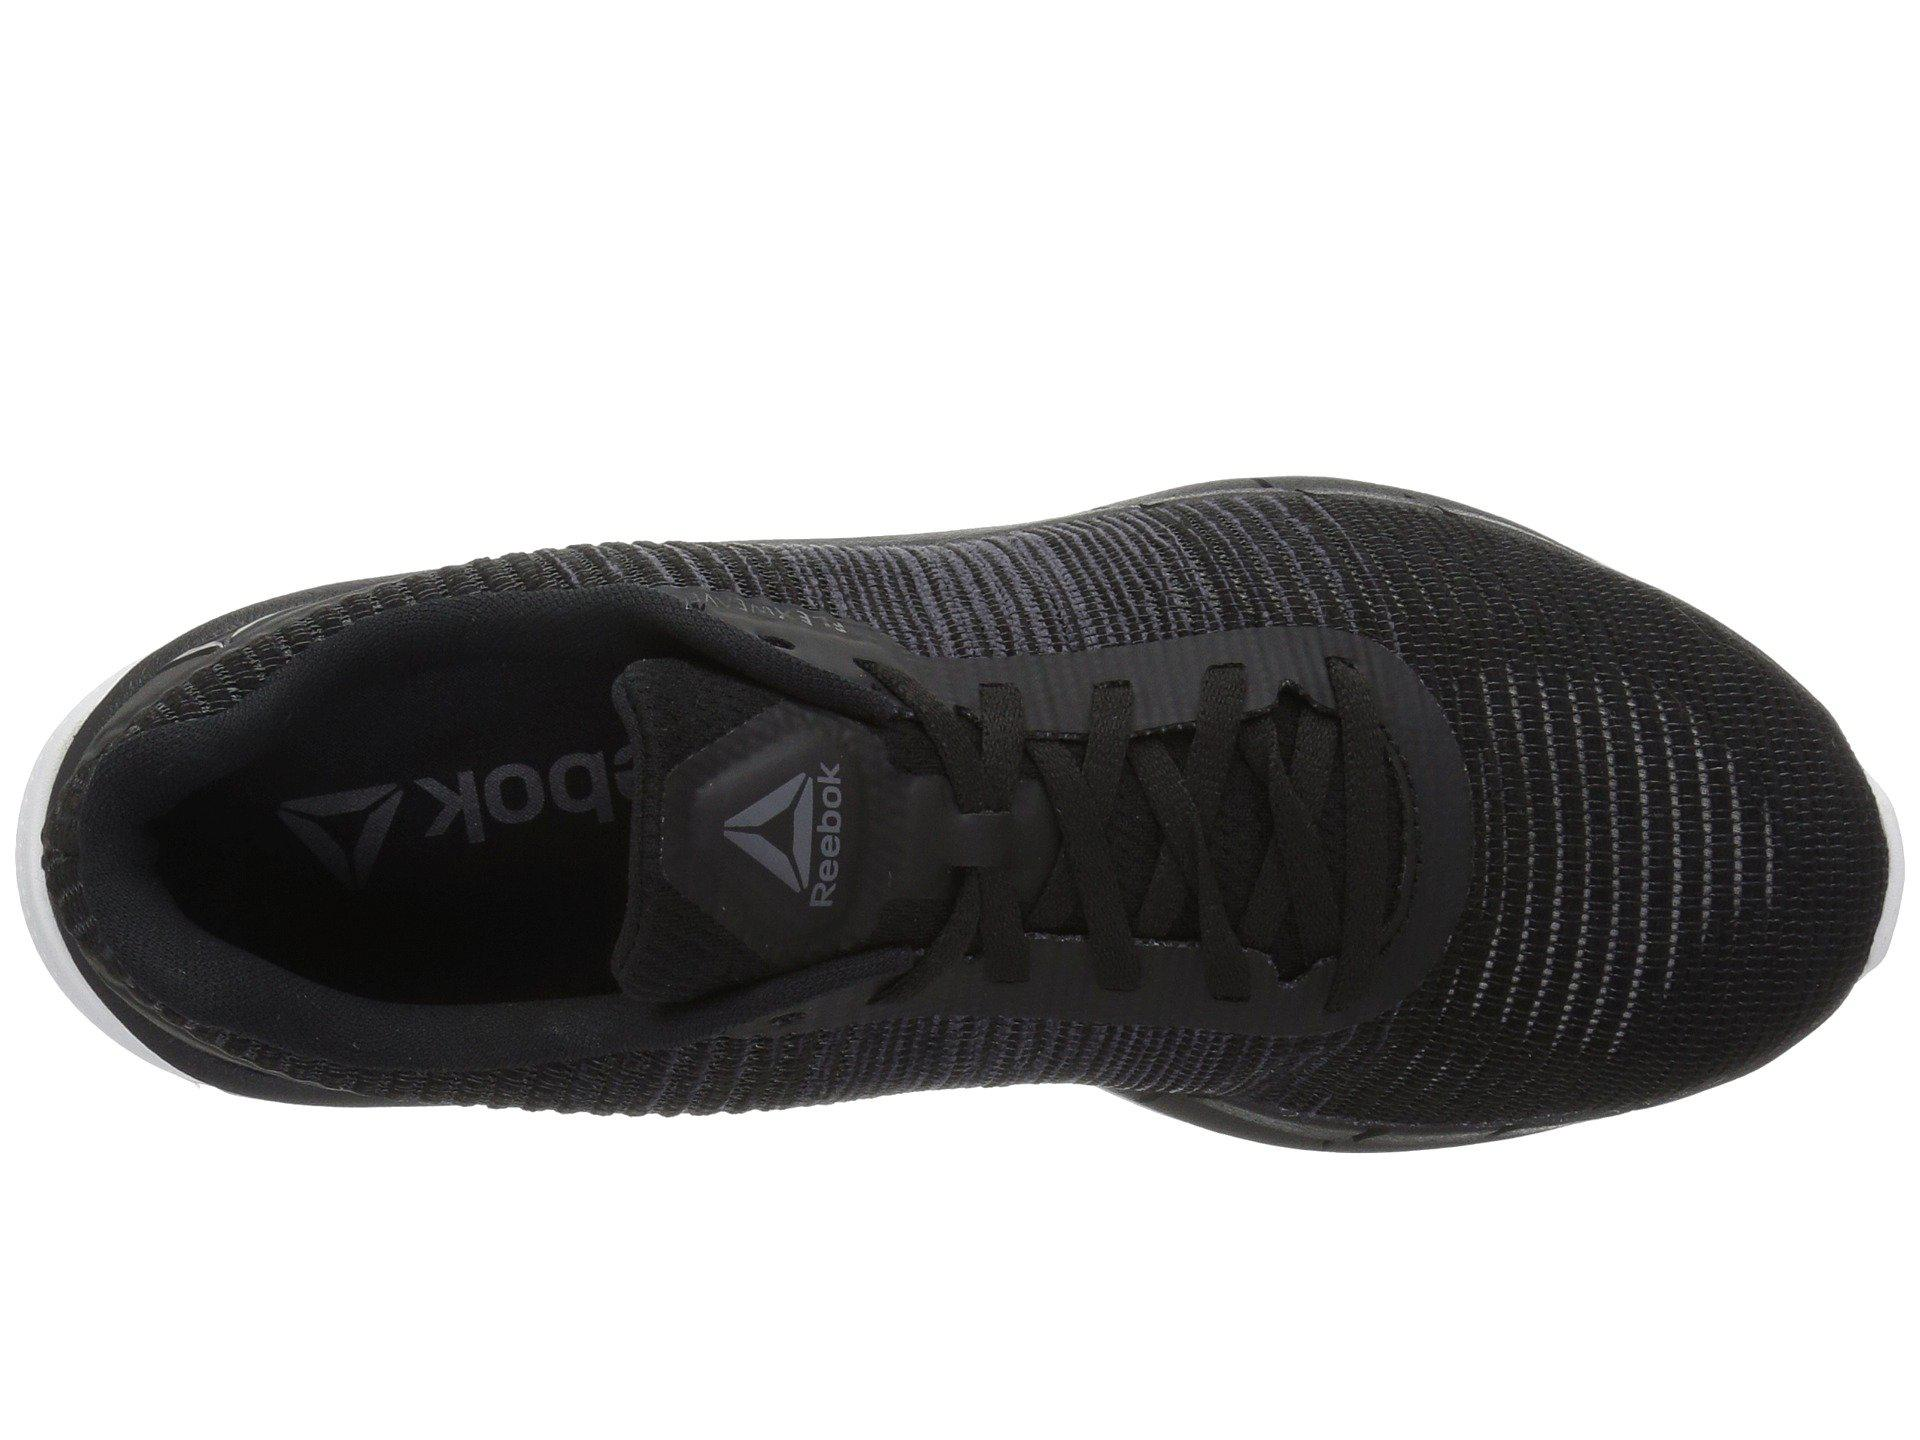 971651a1fb6b Reebok - Black Flexweave Run for Men - Lyst. View fullscreen